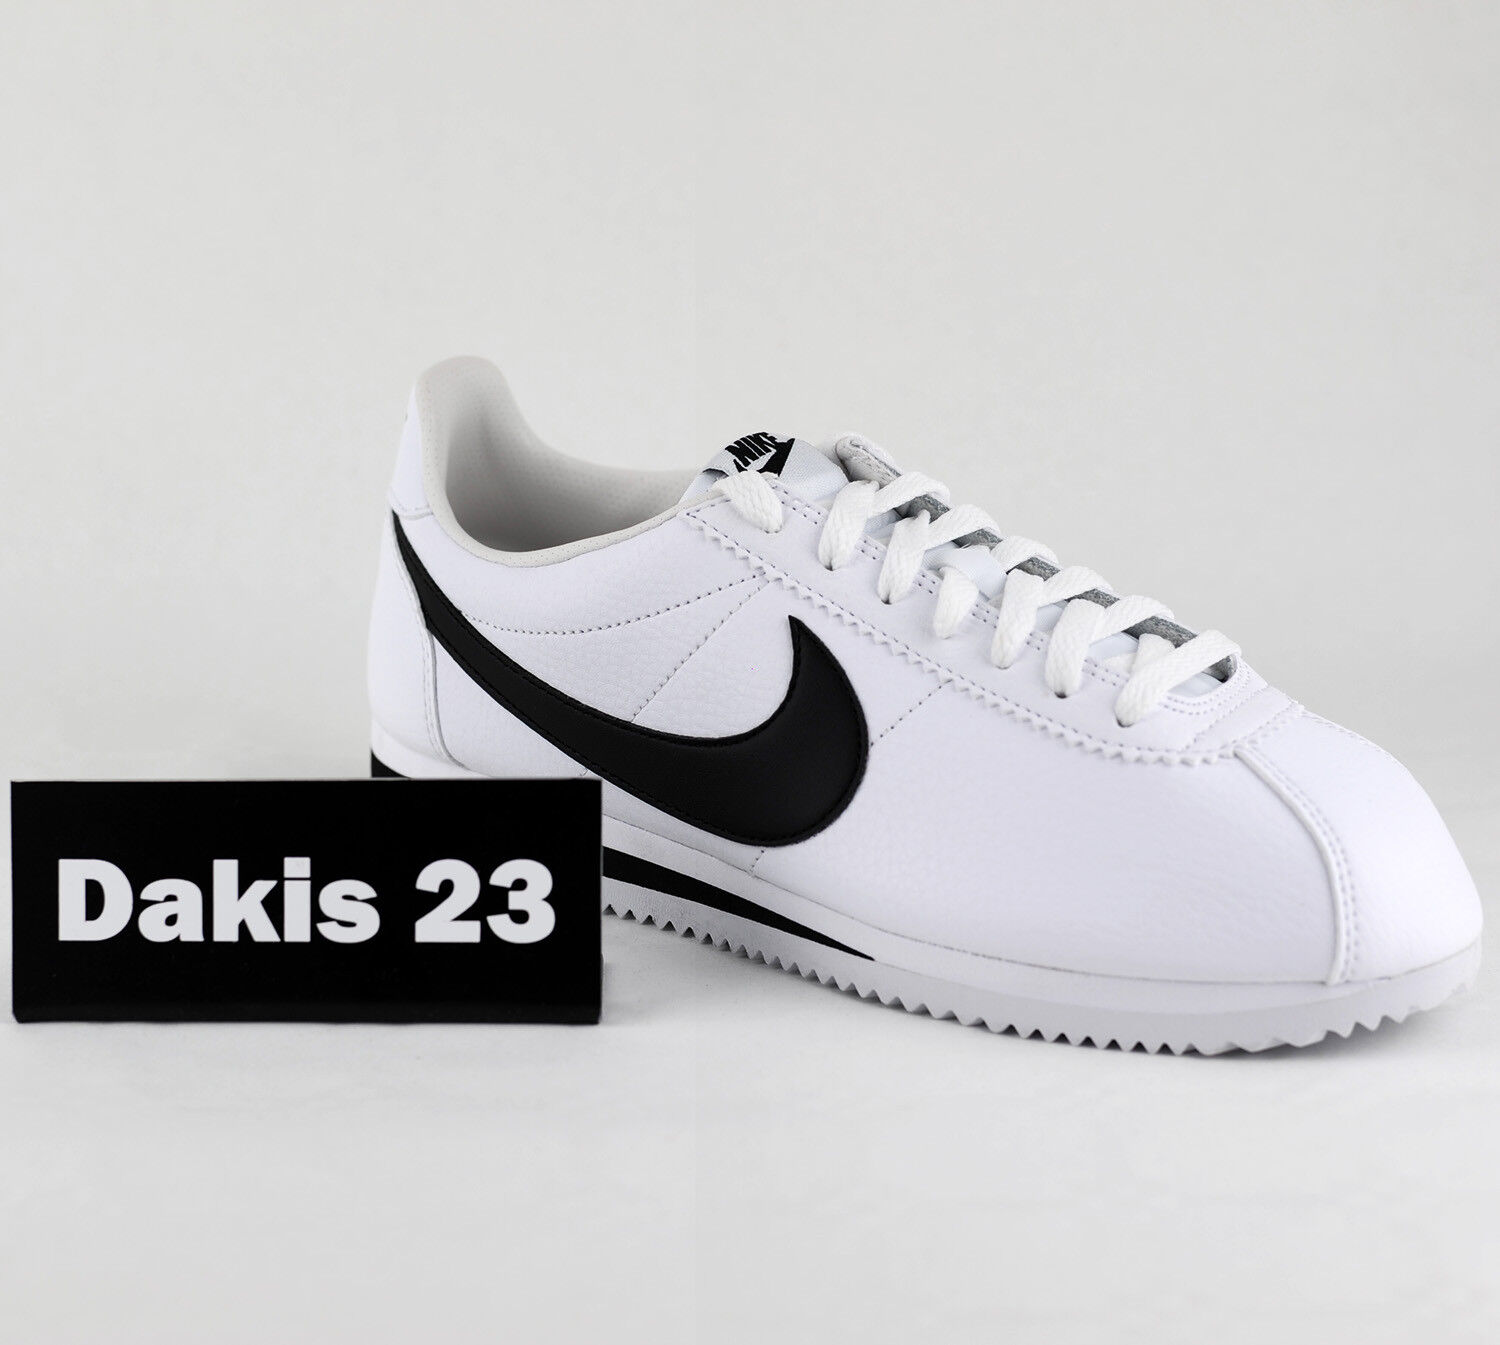 Nike Classic Cortez Leather Men Lifestyle Sneakers New White Black 749571-100